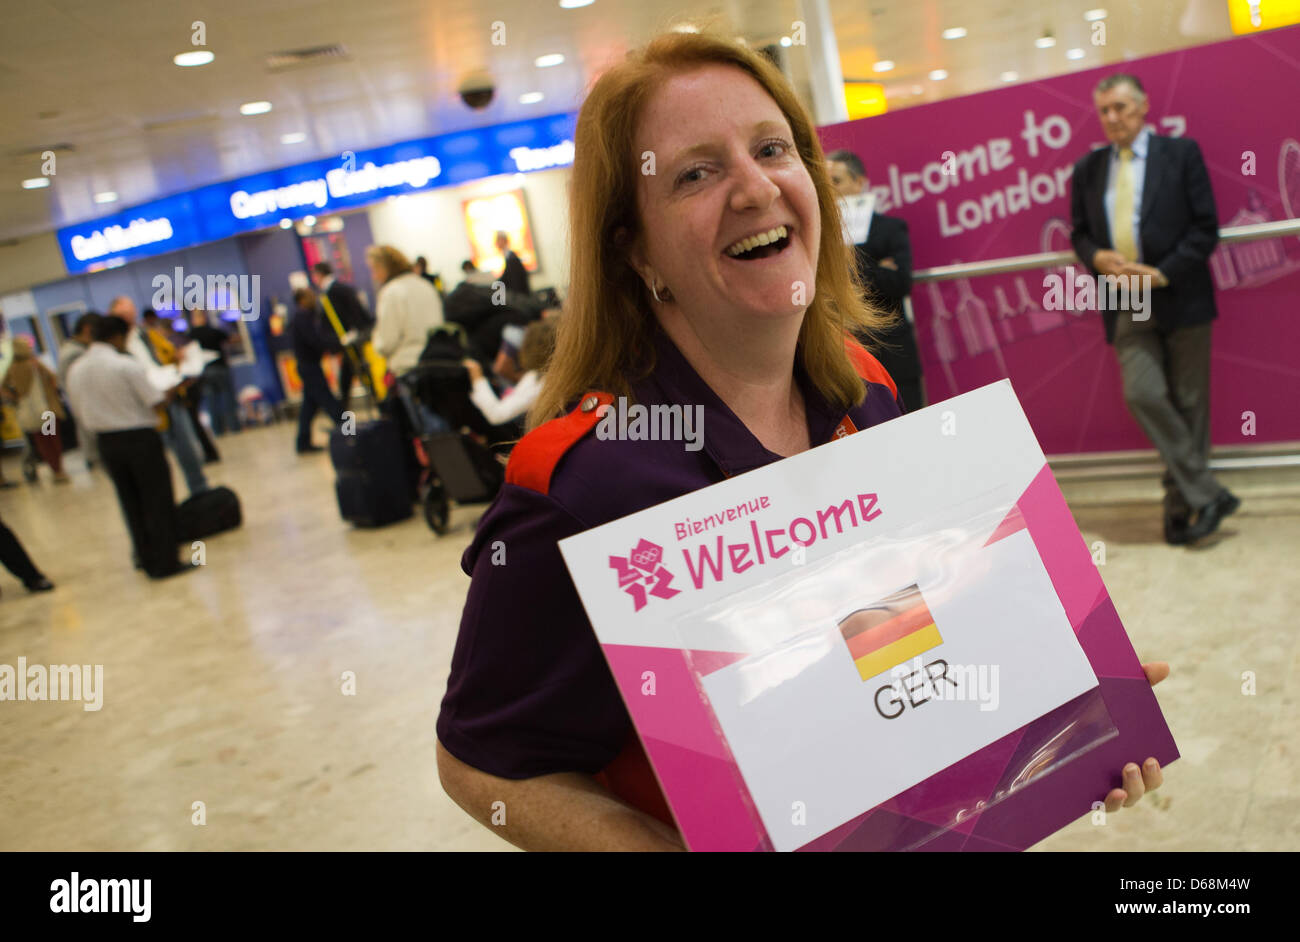 Meet greet airport stock photos meet greet airport stock images sophie hannaford from the meet and greet team welcomes guests at heathrow airport in m4hsunfo